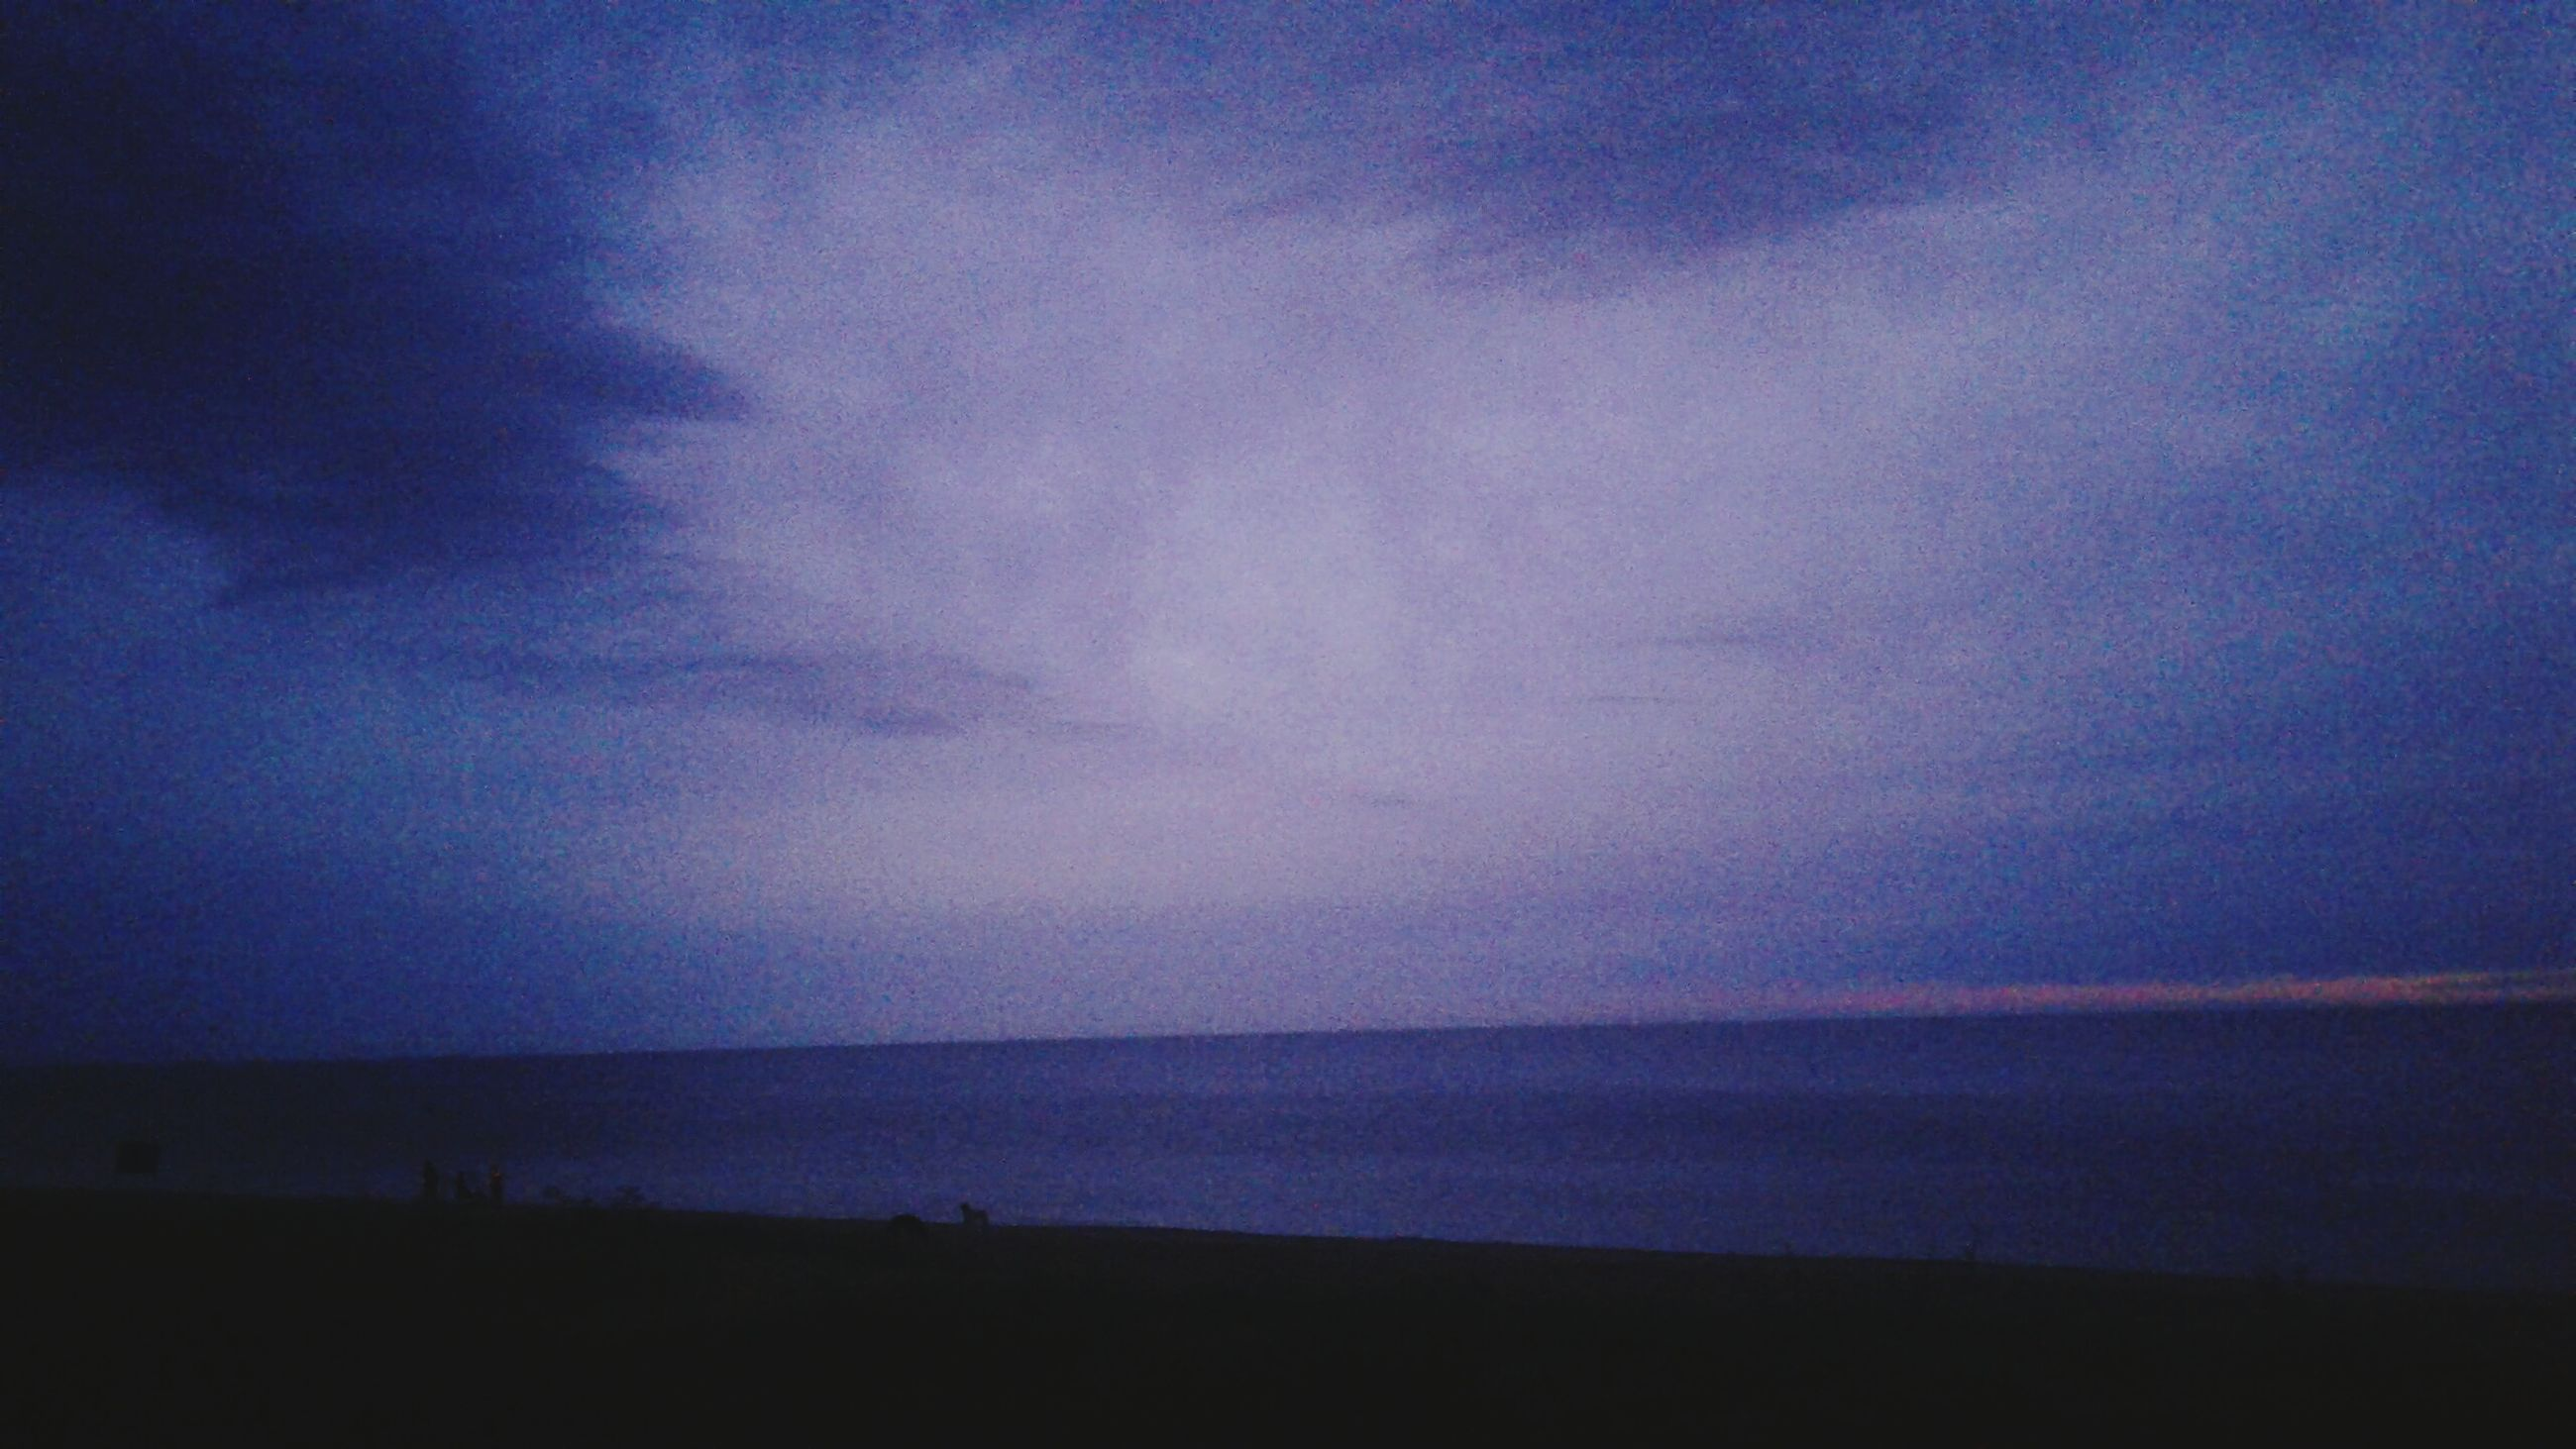 sea, sky, nature, beauty in nature, scenics, tranquil scene, water, tranquility, horizon over water, beach, outdoors, no people, night, astronomy, galaxy